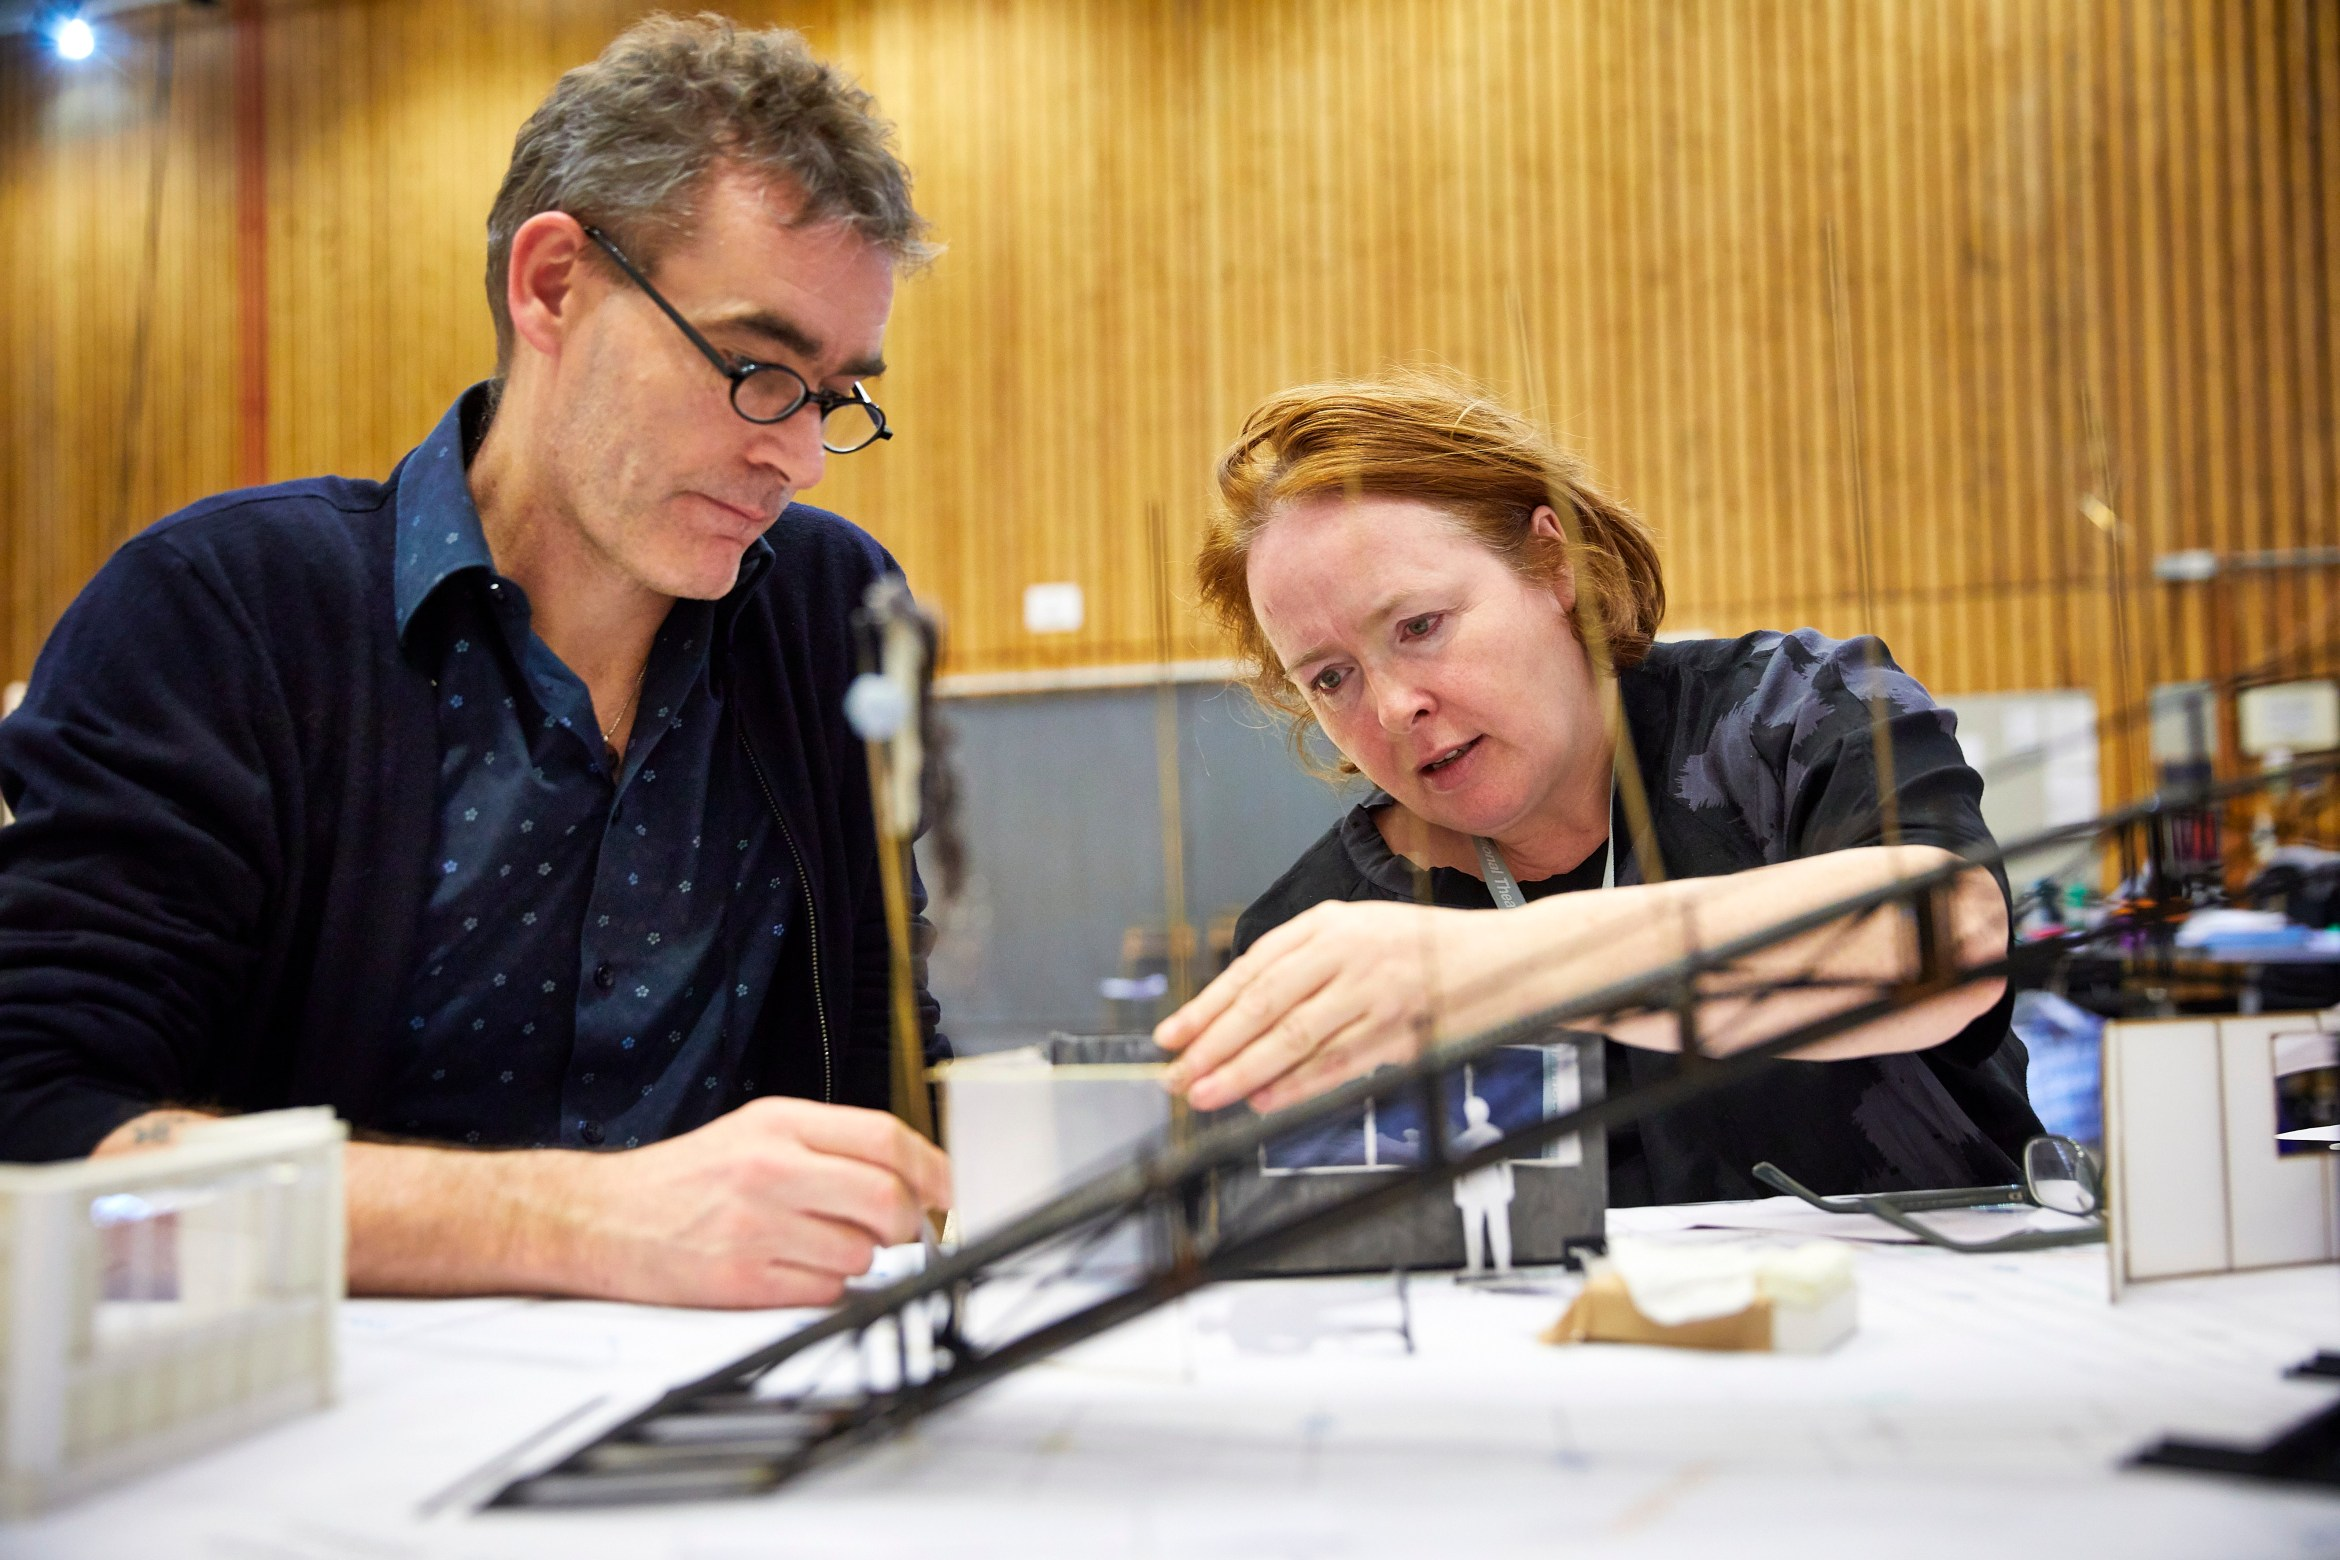 1002-0110 Rufus Norris and Rae Smith in rehearsals for Macbeth at the National Theatre (c) Brinkhoff and Moegenburg.JPG